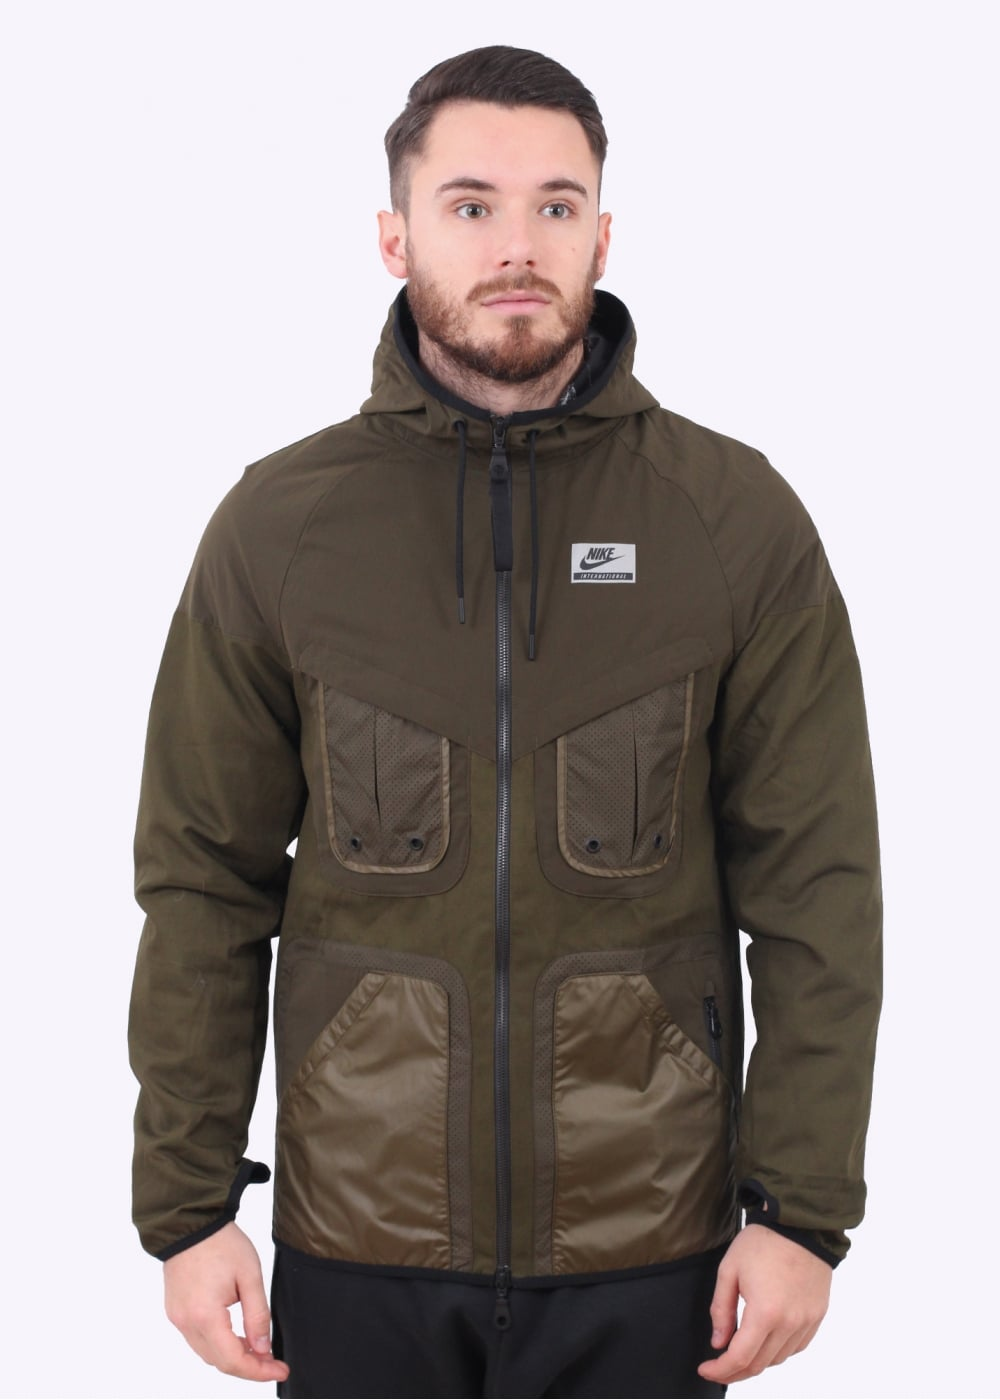 Nike Apparel International Windrunner Jacket - Dark Olive - Jackets ... 416e987698